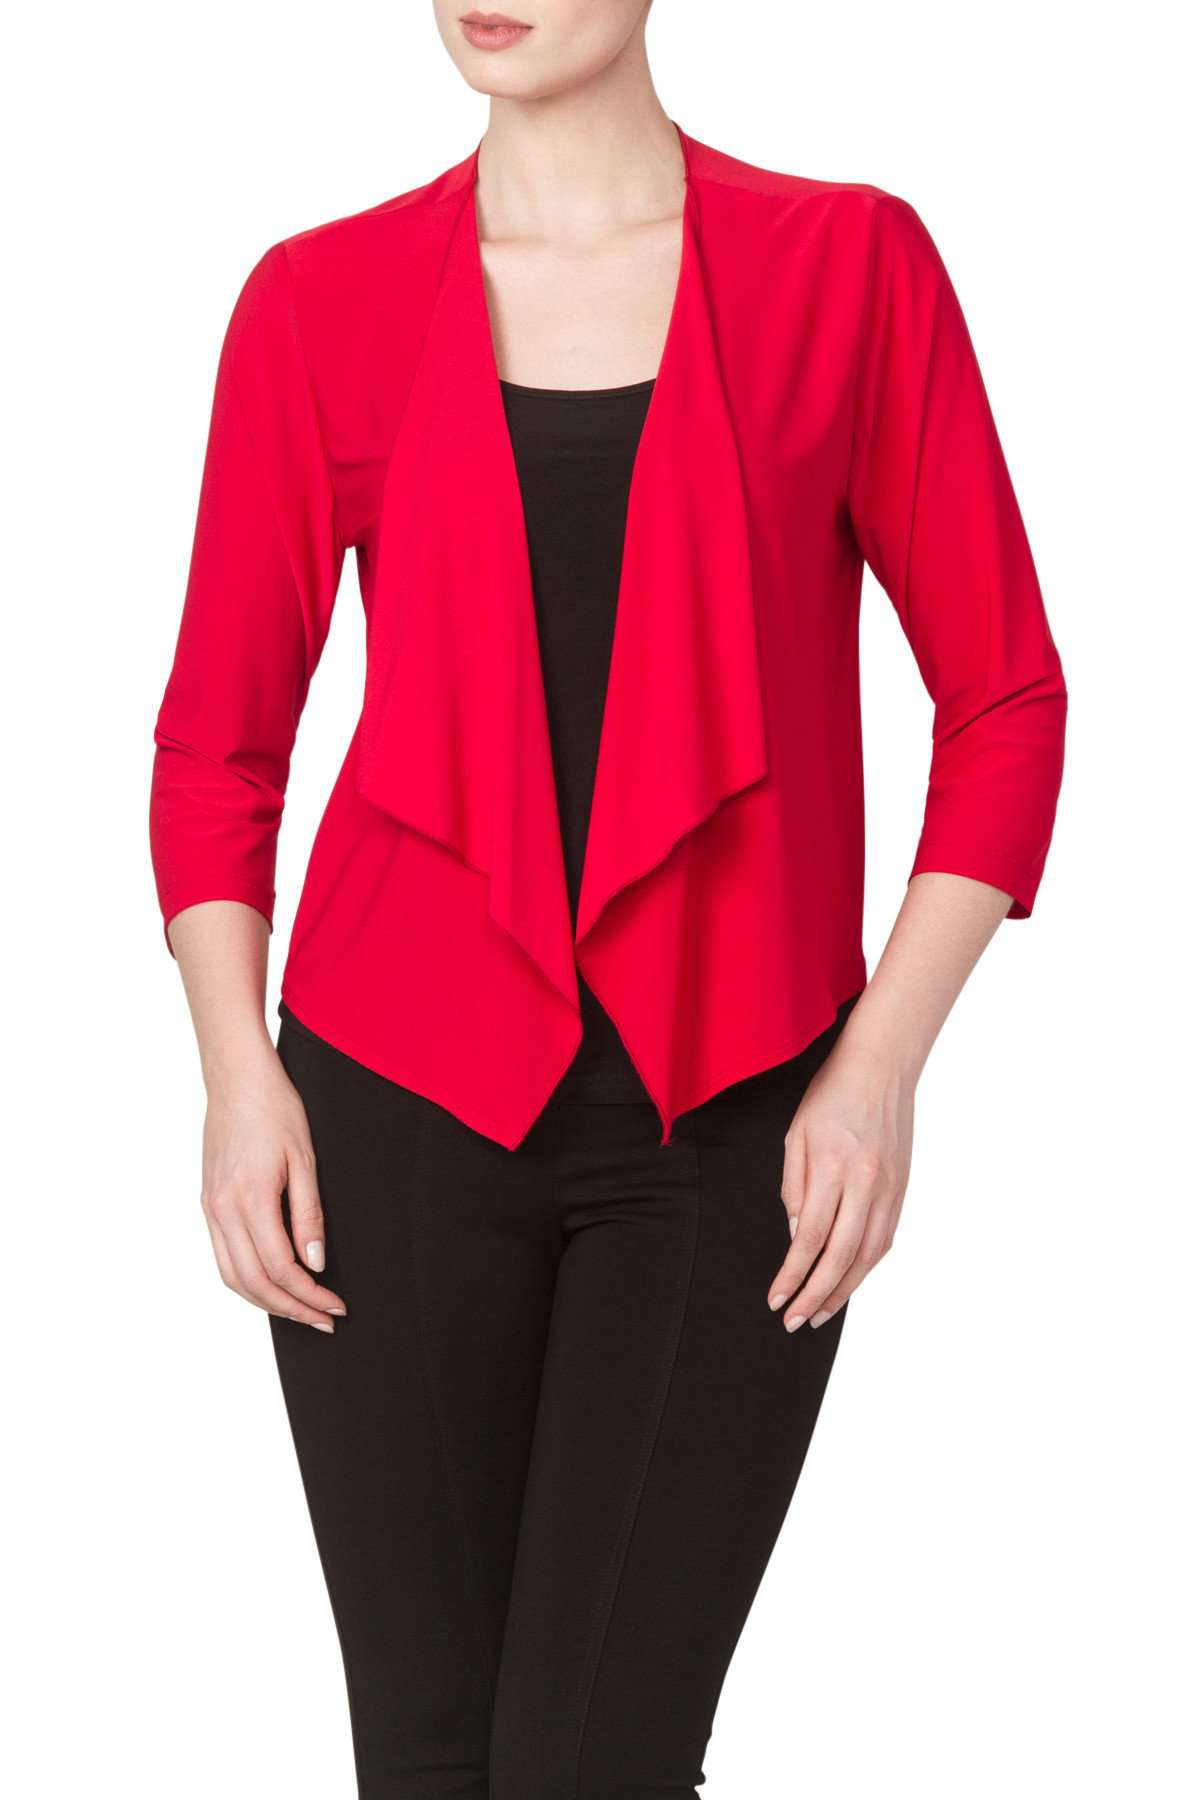 Jacket Red Cardigan Style in Soft Knit Fabric-Washable-Great Fit-Quality and Comfort Guaranteed-Made in Canada - Yvonne Marie